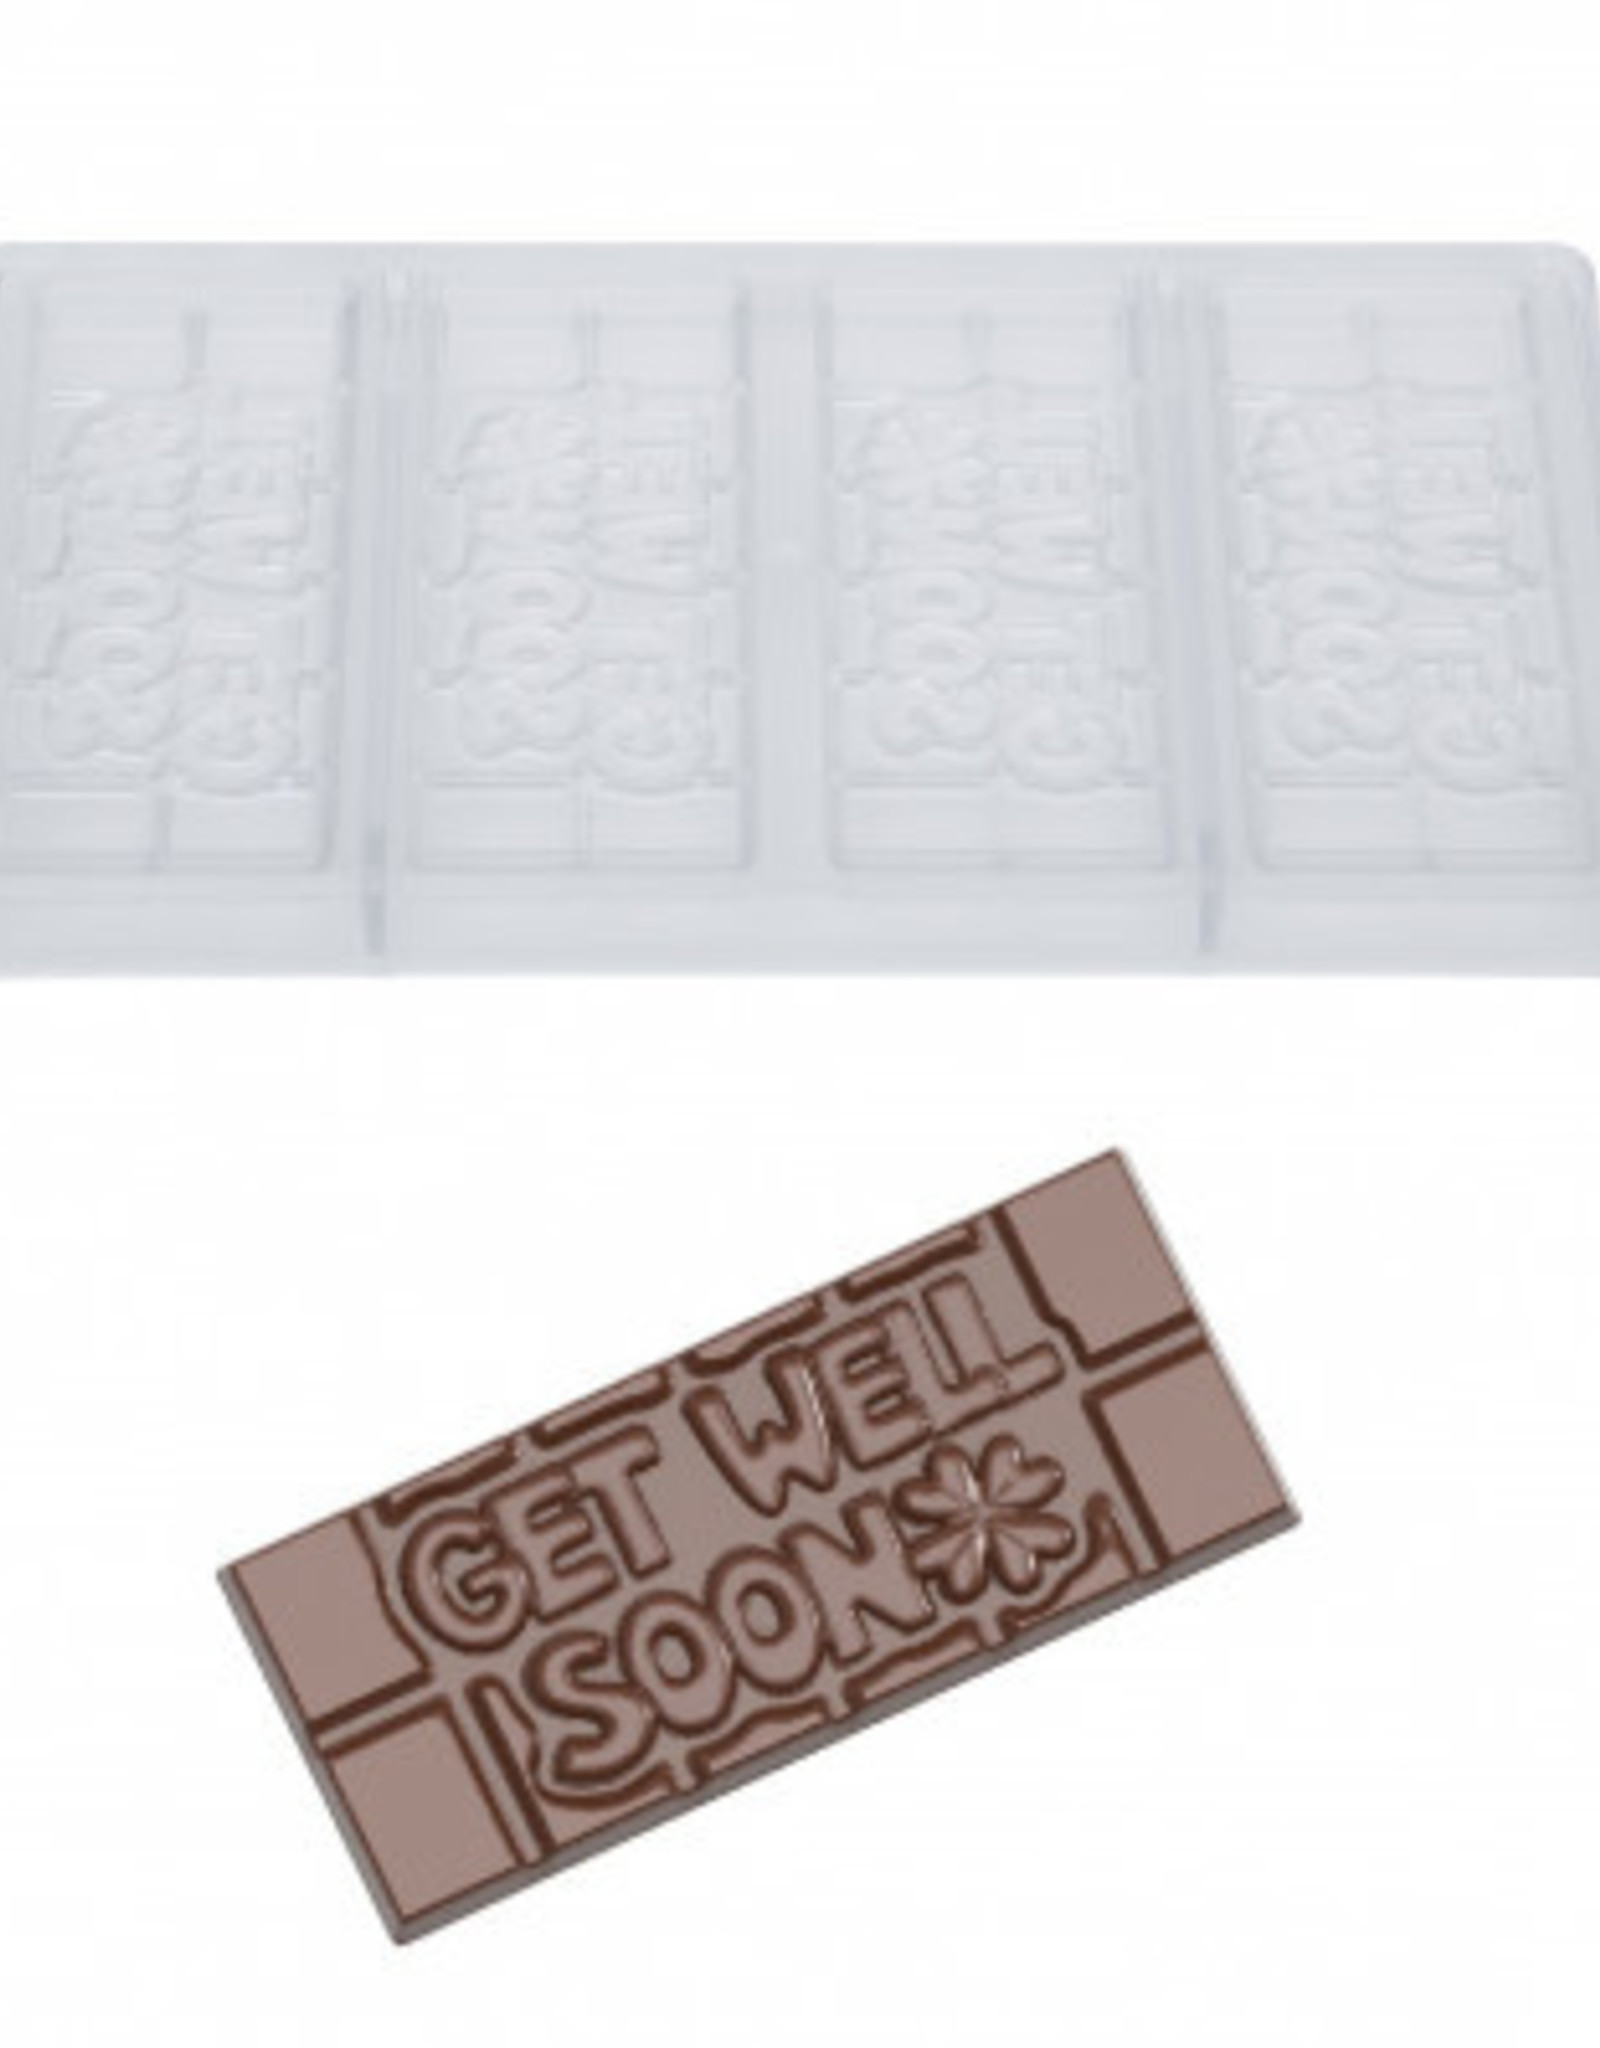 Chocolate World Chocolademal Chocolate World Tablet Get Well Soon (4)